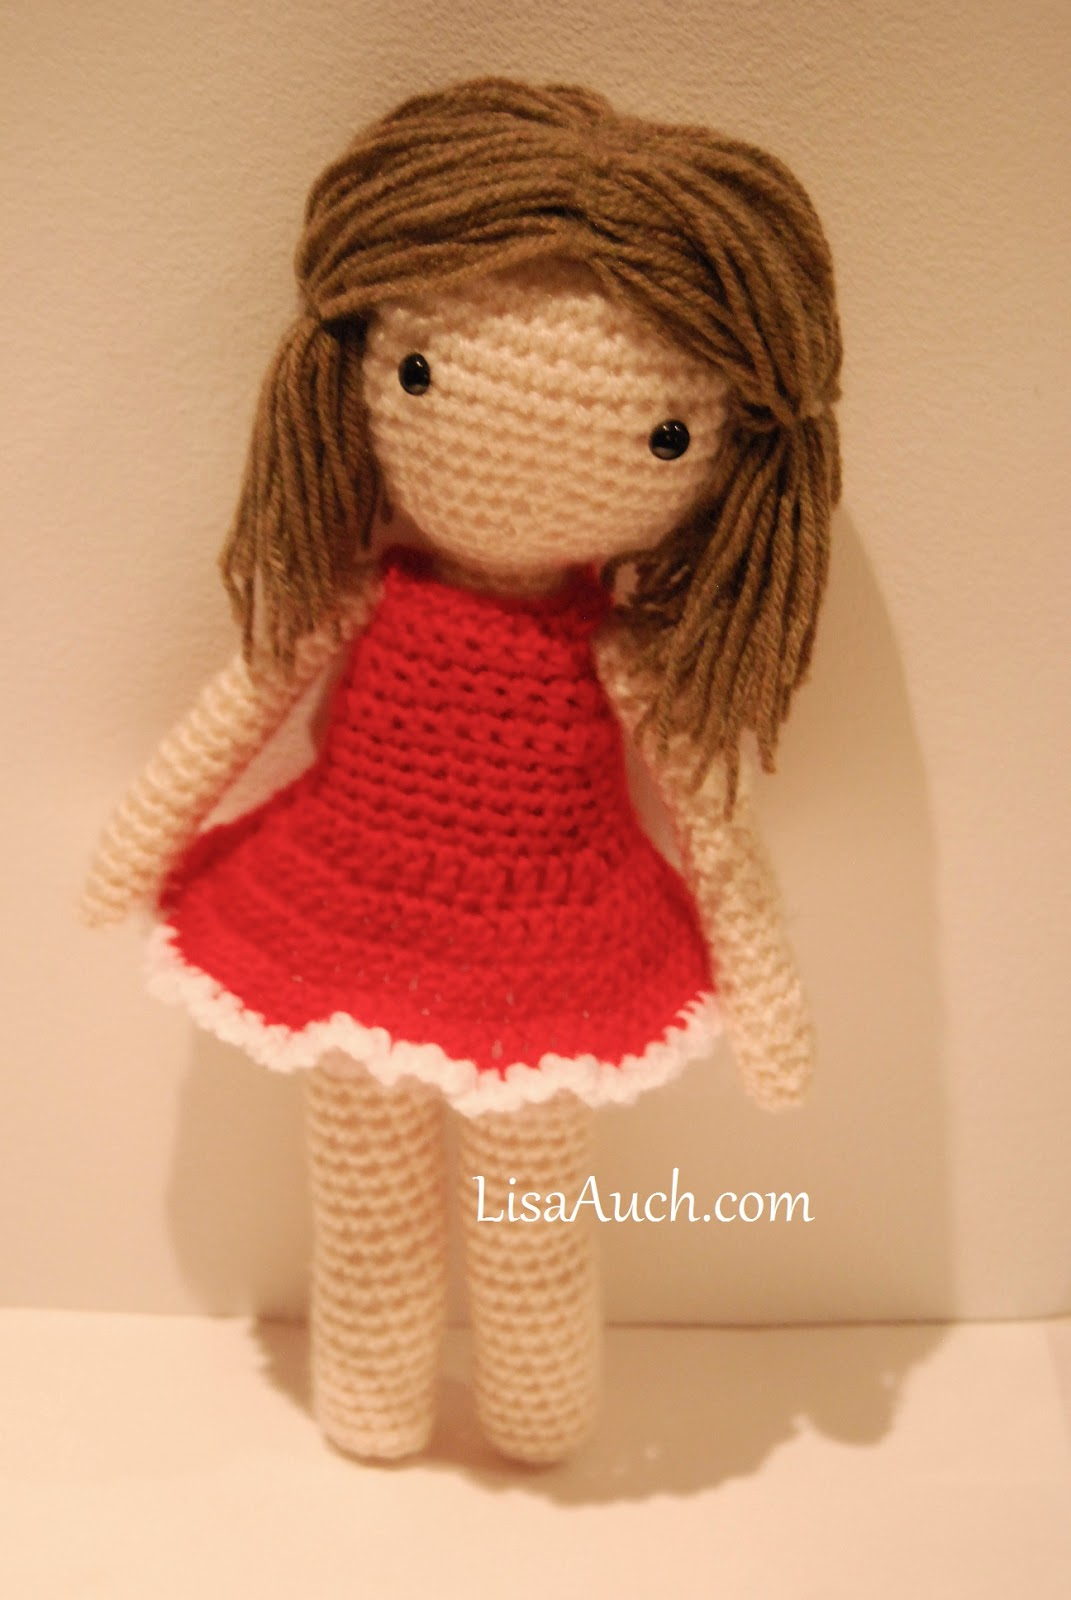 free crochet amigurumi doll pattern with removable dress.